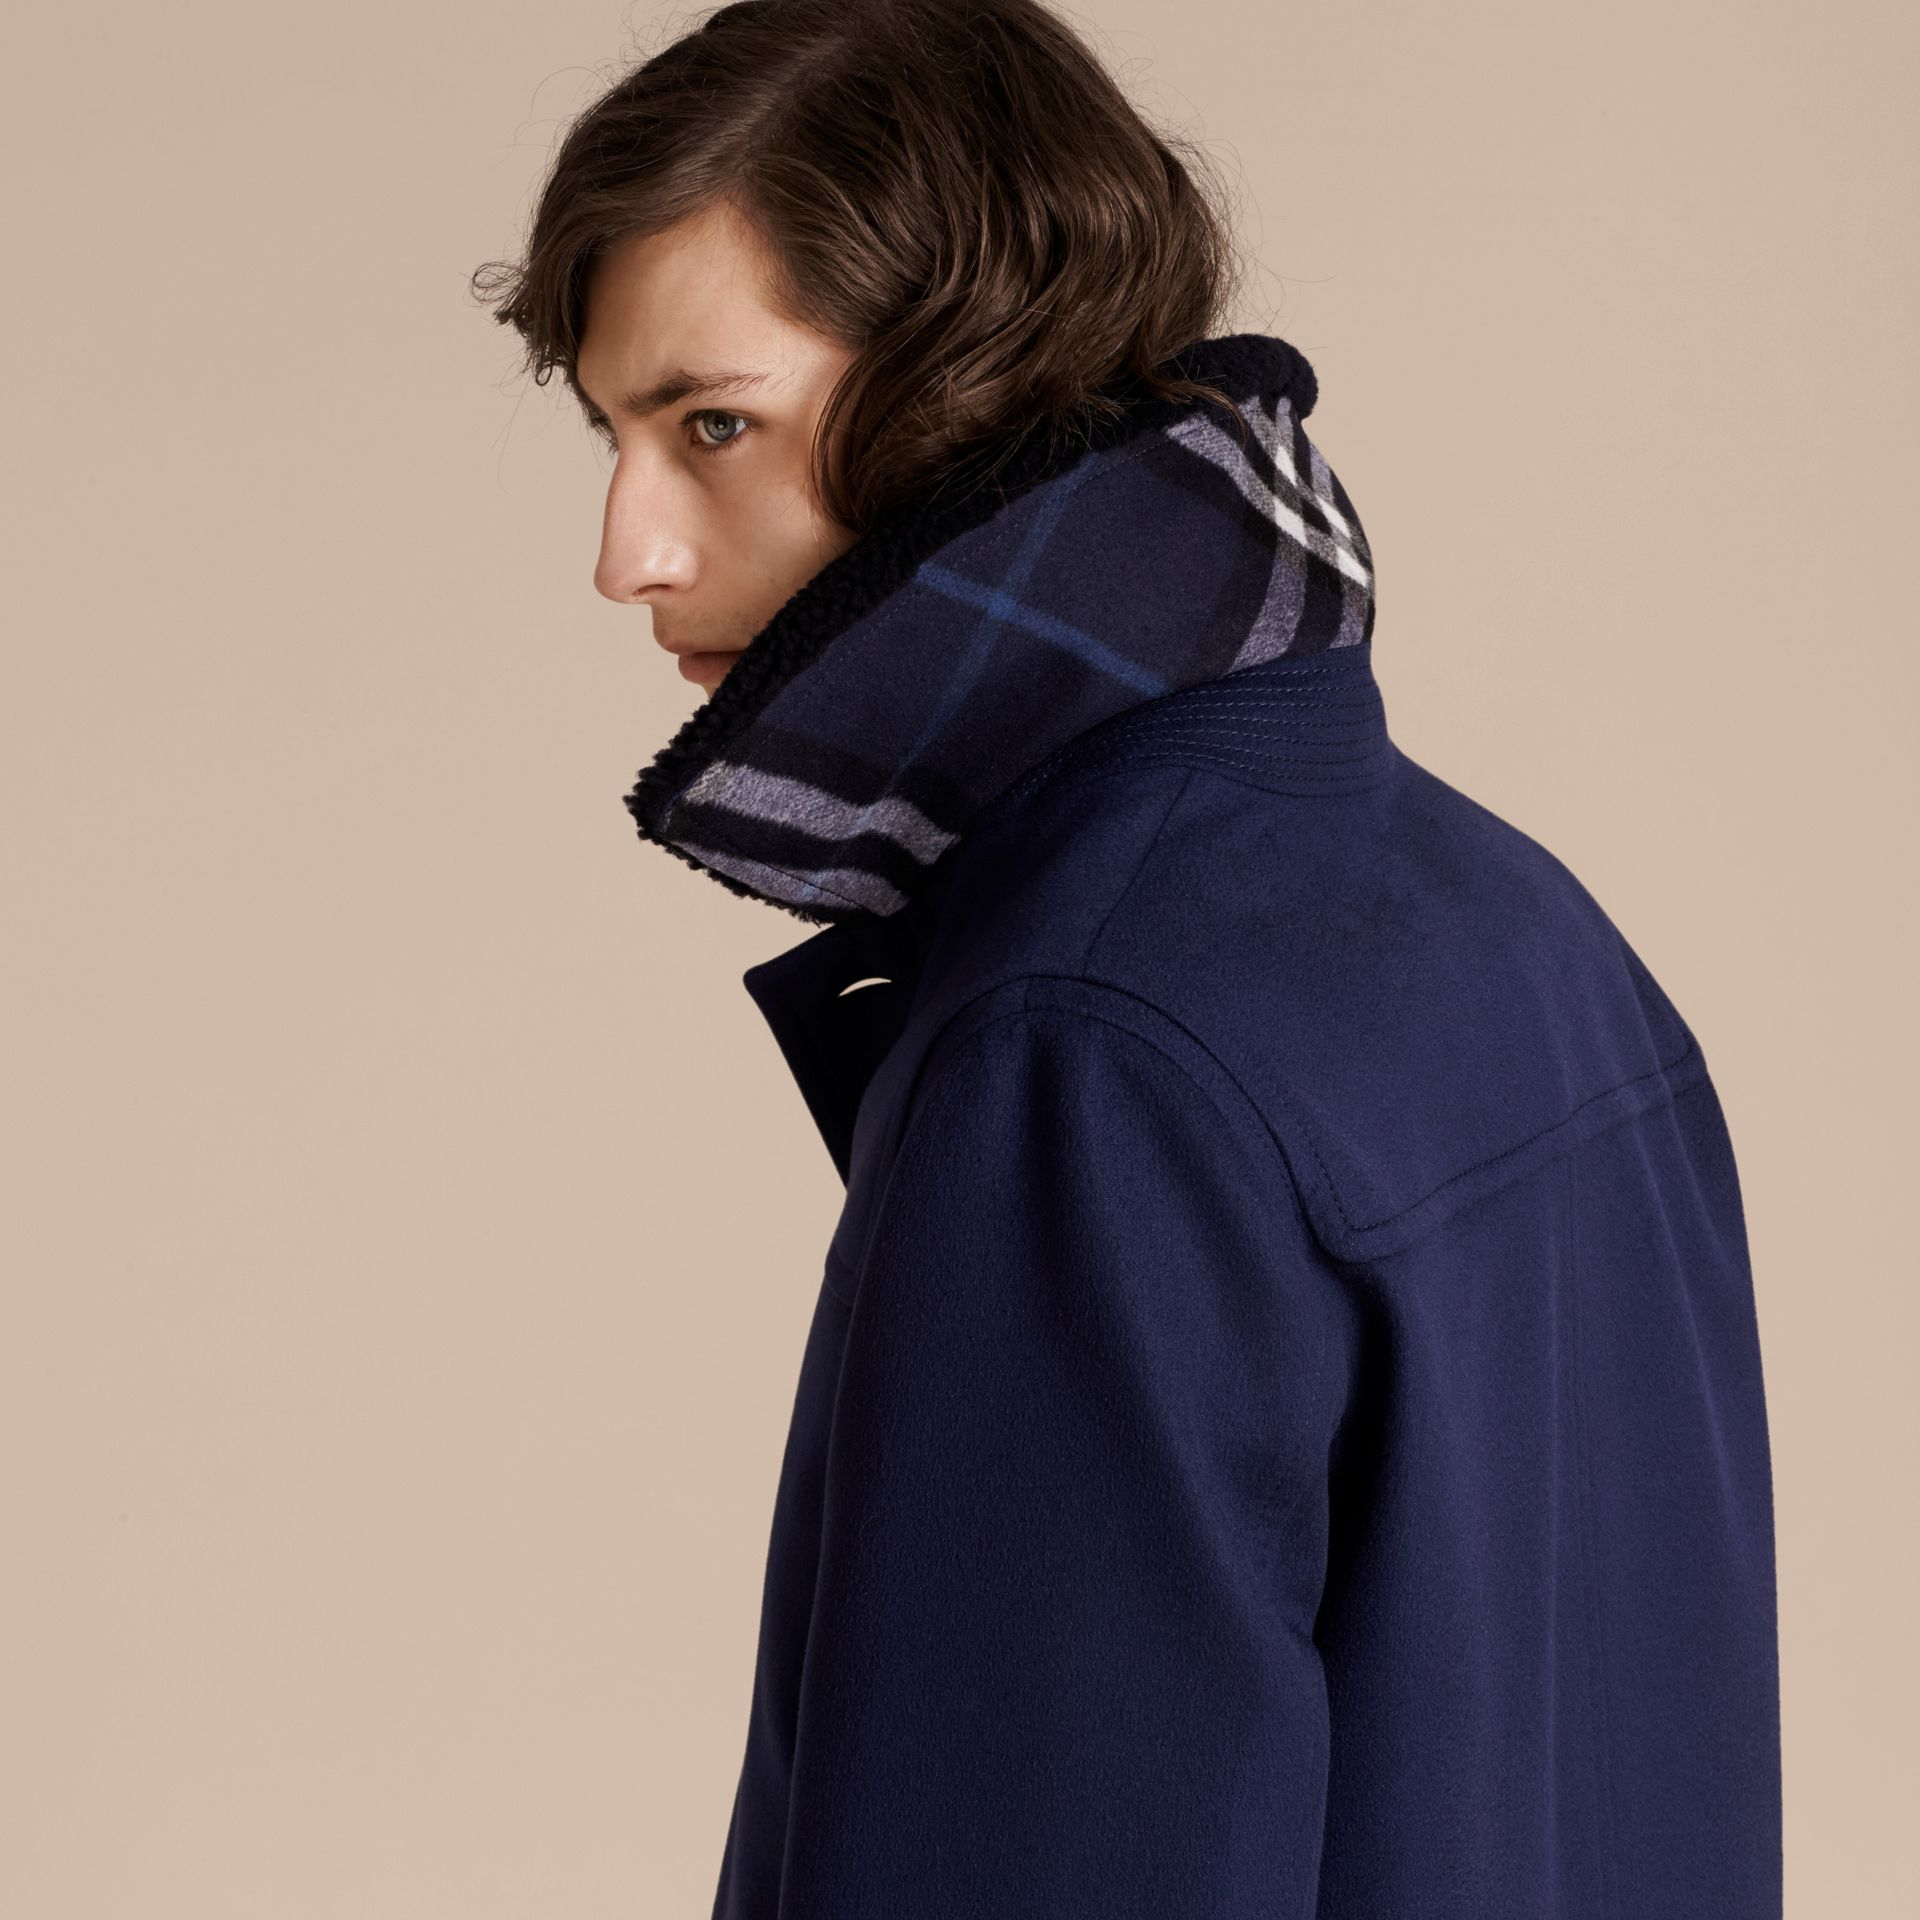 Blueberry Cashmere Donkey Jacket with Detachable Shearling Collar - gallery image 5